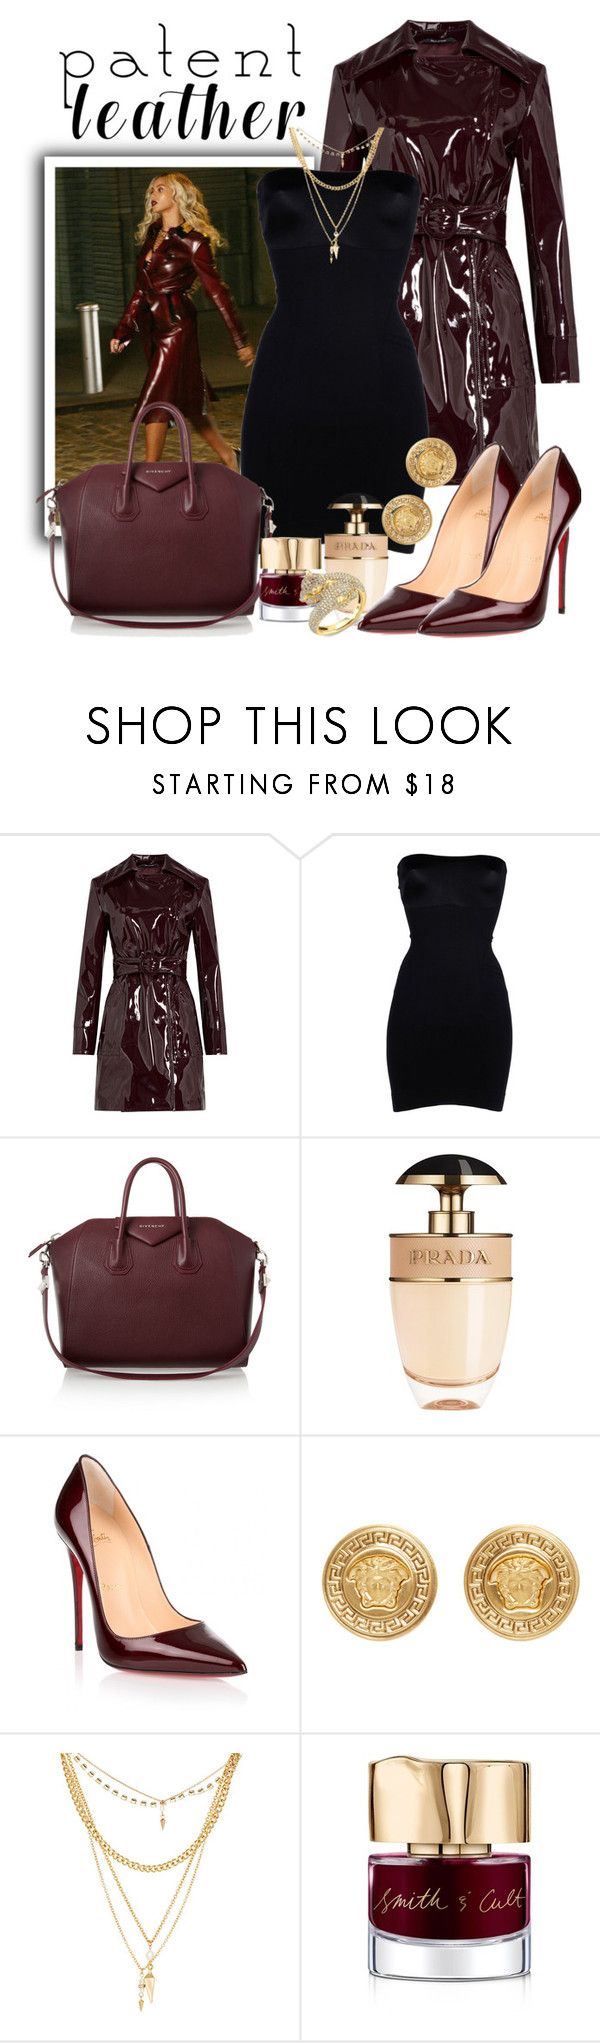 """Maison Margiela Patent Trench Coat"" by isror ❤ liked on Polyvore featuring Burberry, Maison Margiela, SPANX, Givenchy, Prada, Christian Louboutin, Versace, Ettika and Smith & Cult"